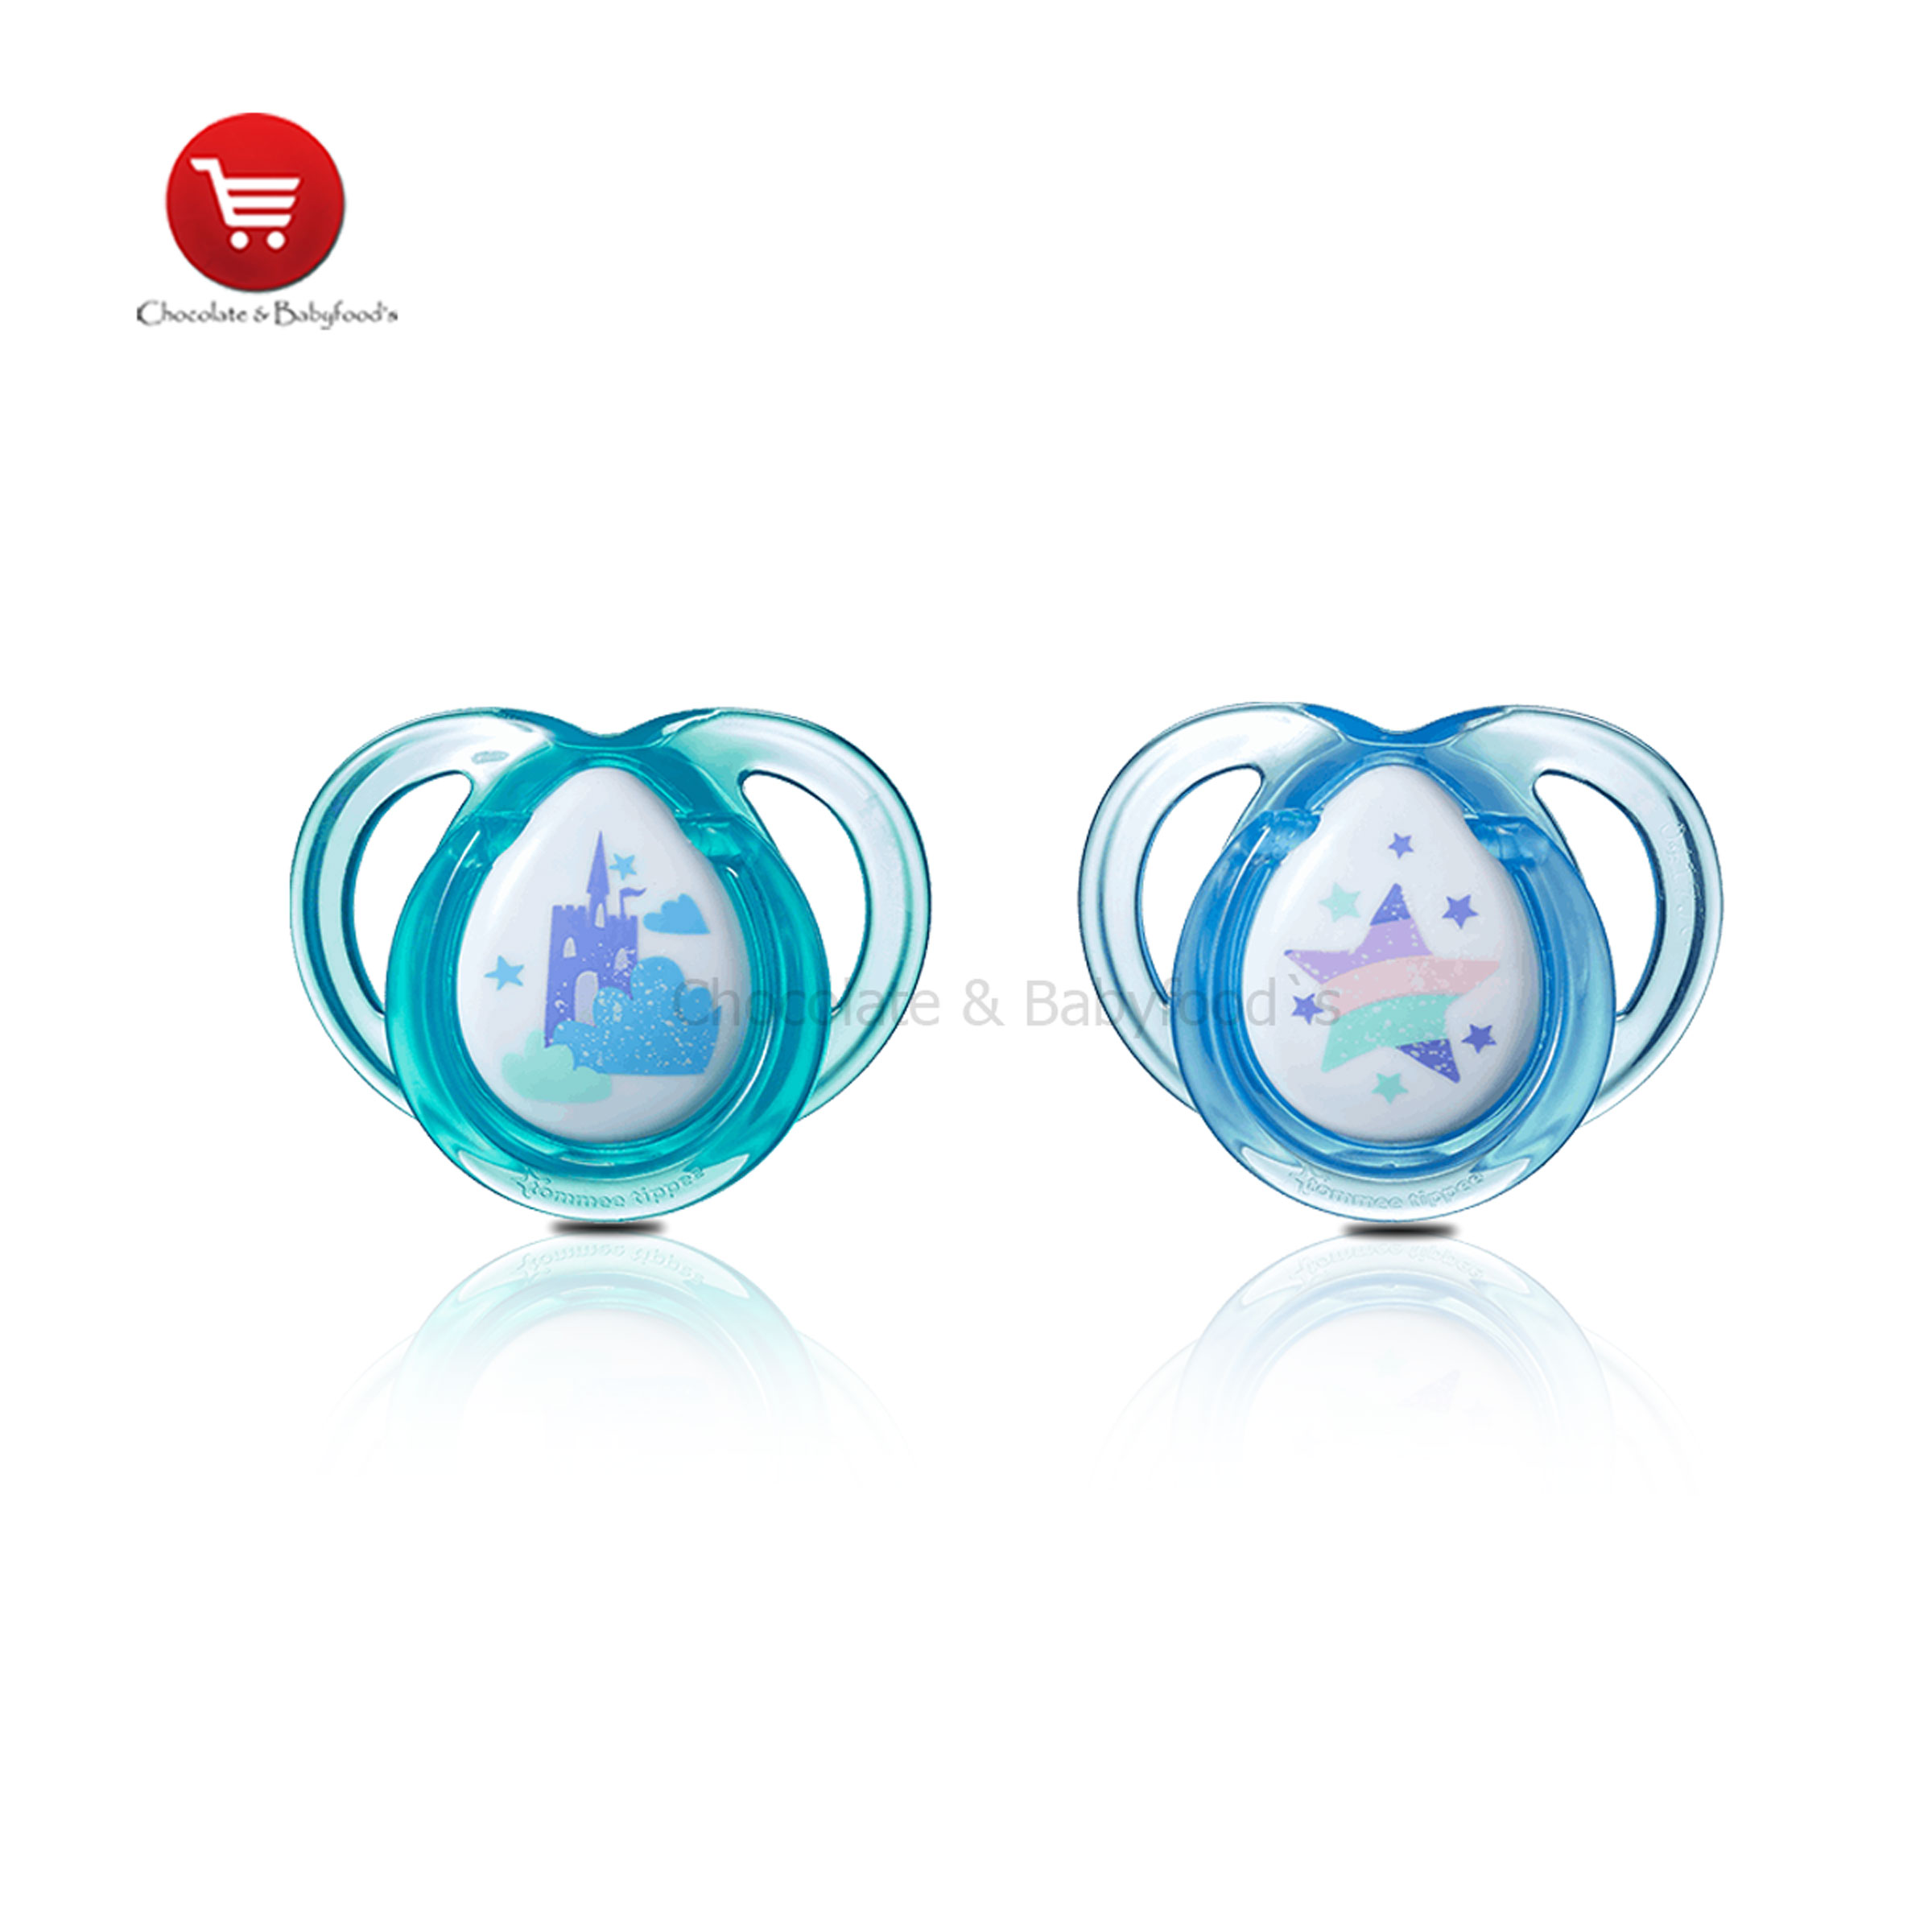 Tommee tippee anytime soother 0-6mnth